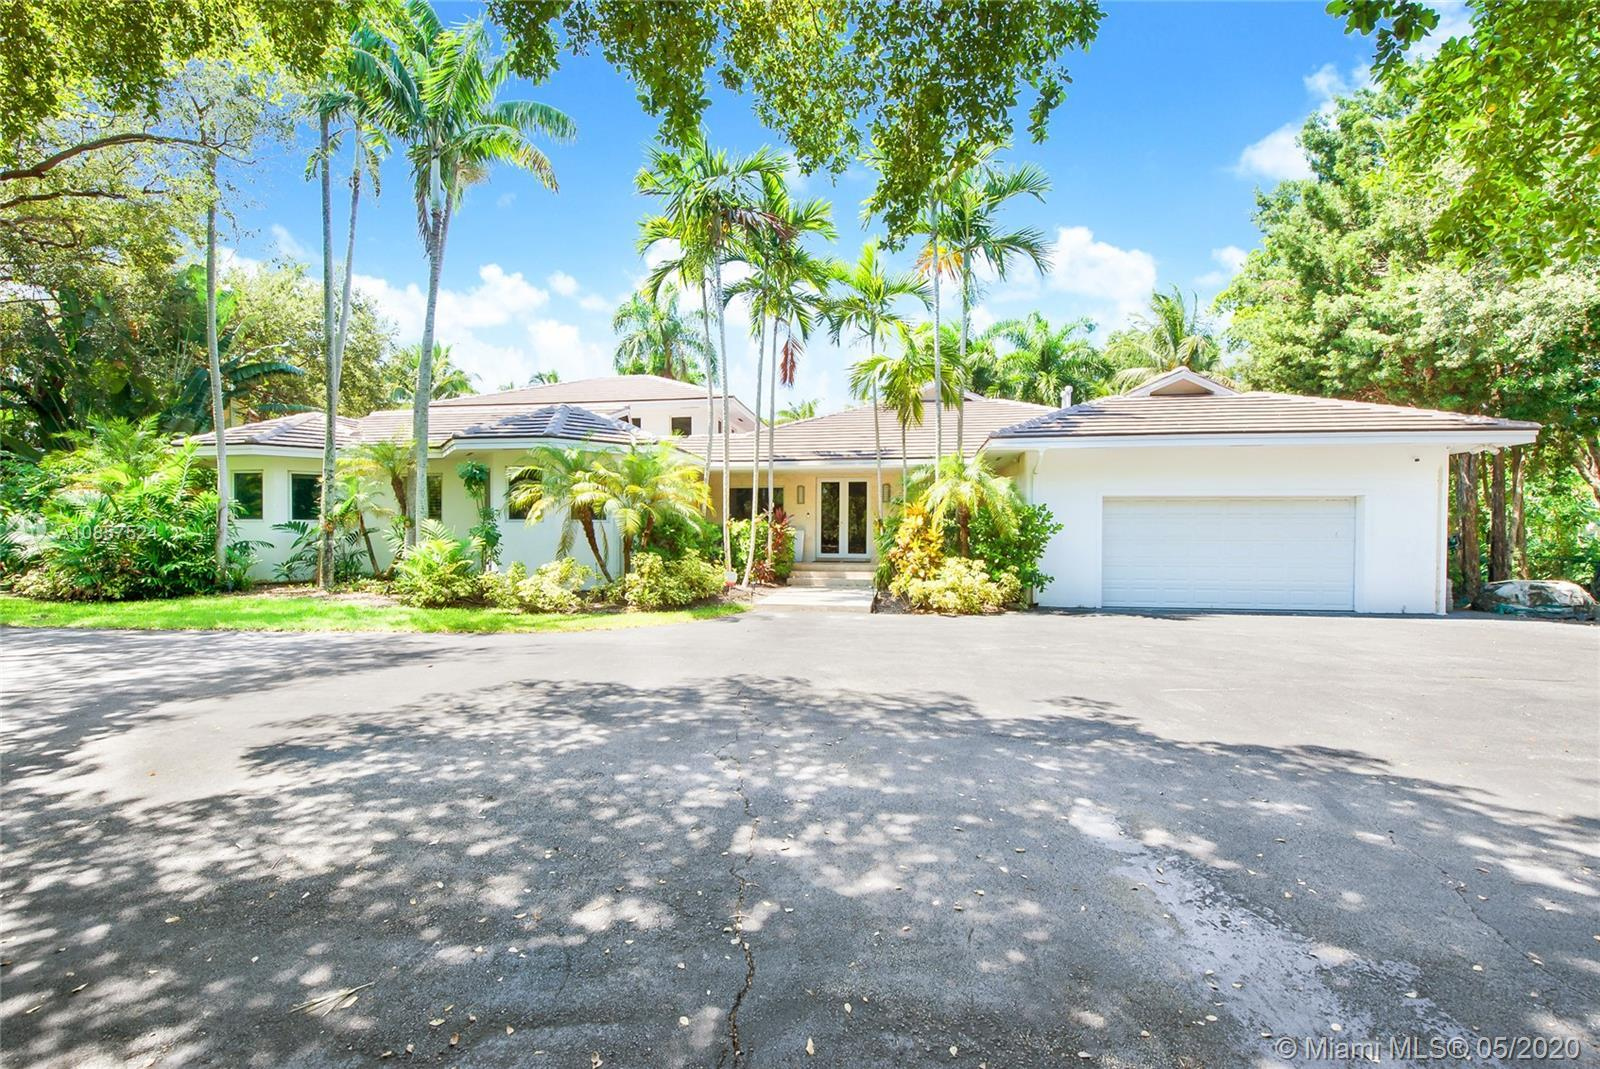 Exclusive Gables by the Sea Single Story Estate nested on a 2 acre lushly landscaped lot. Completely